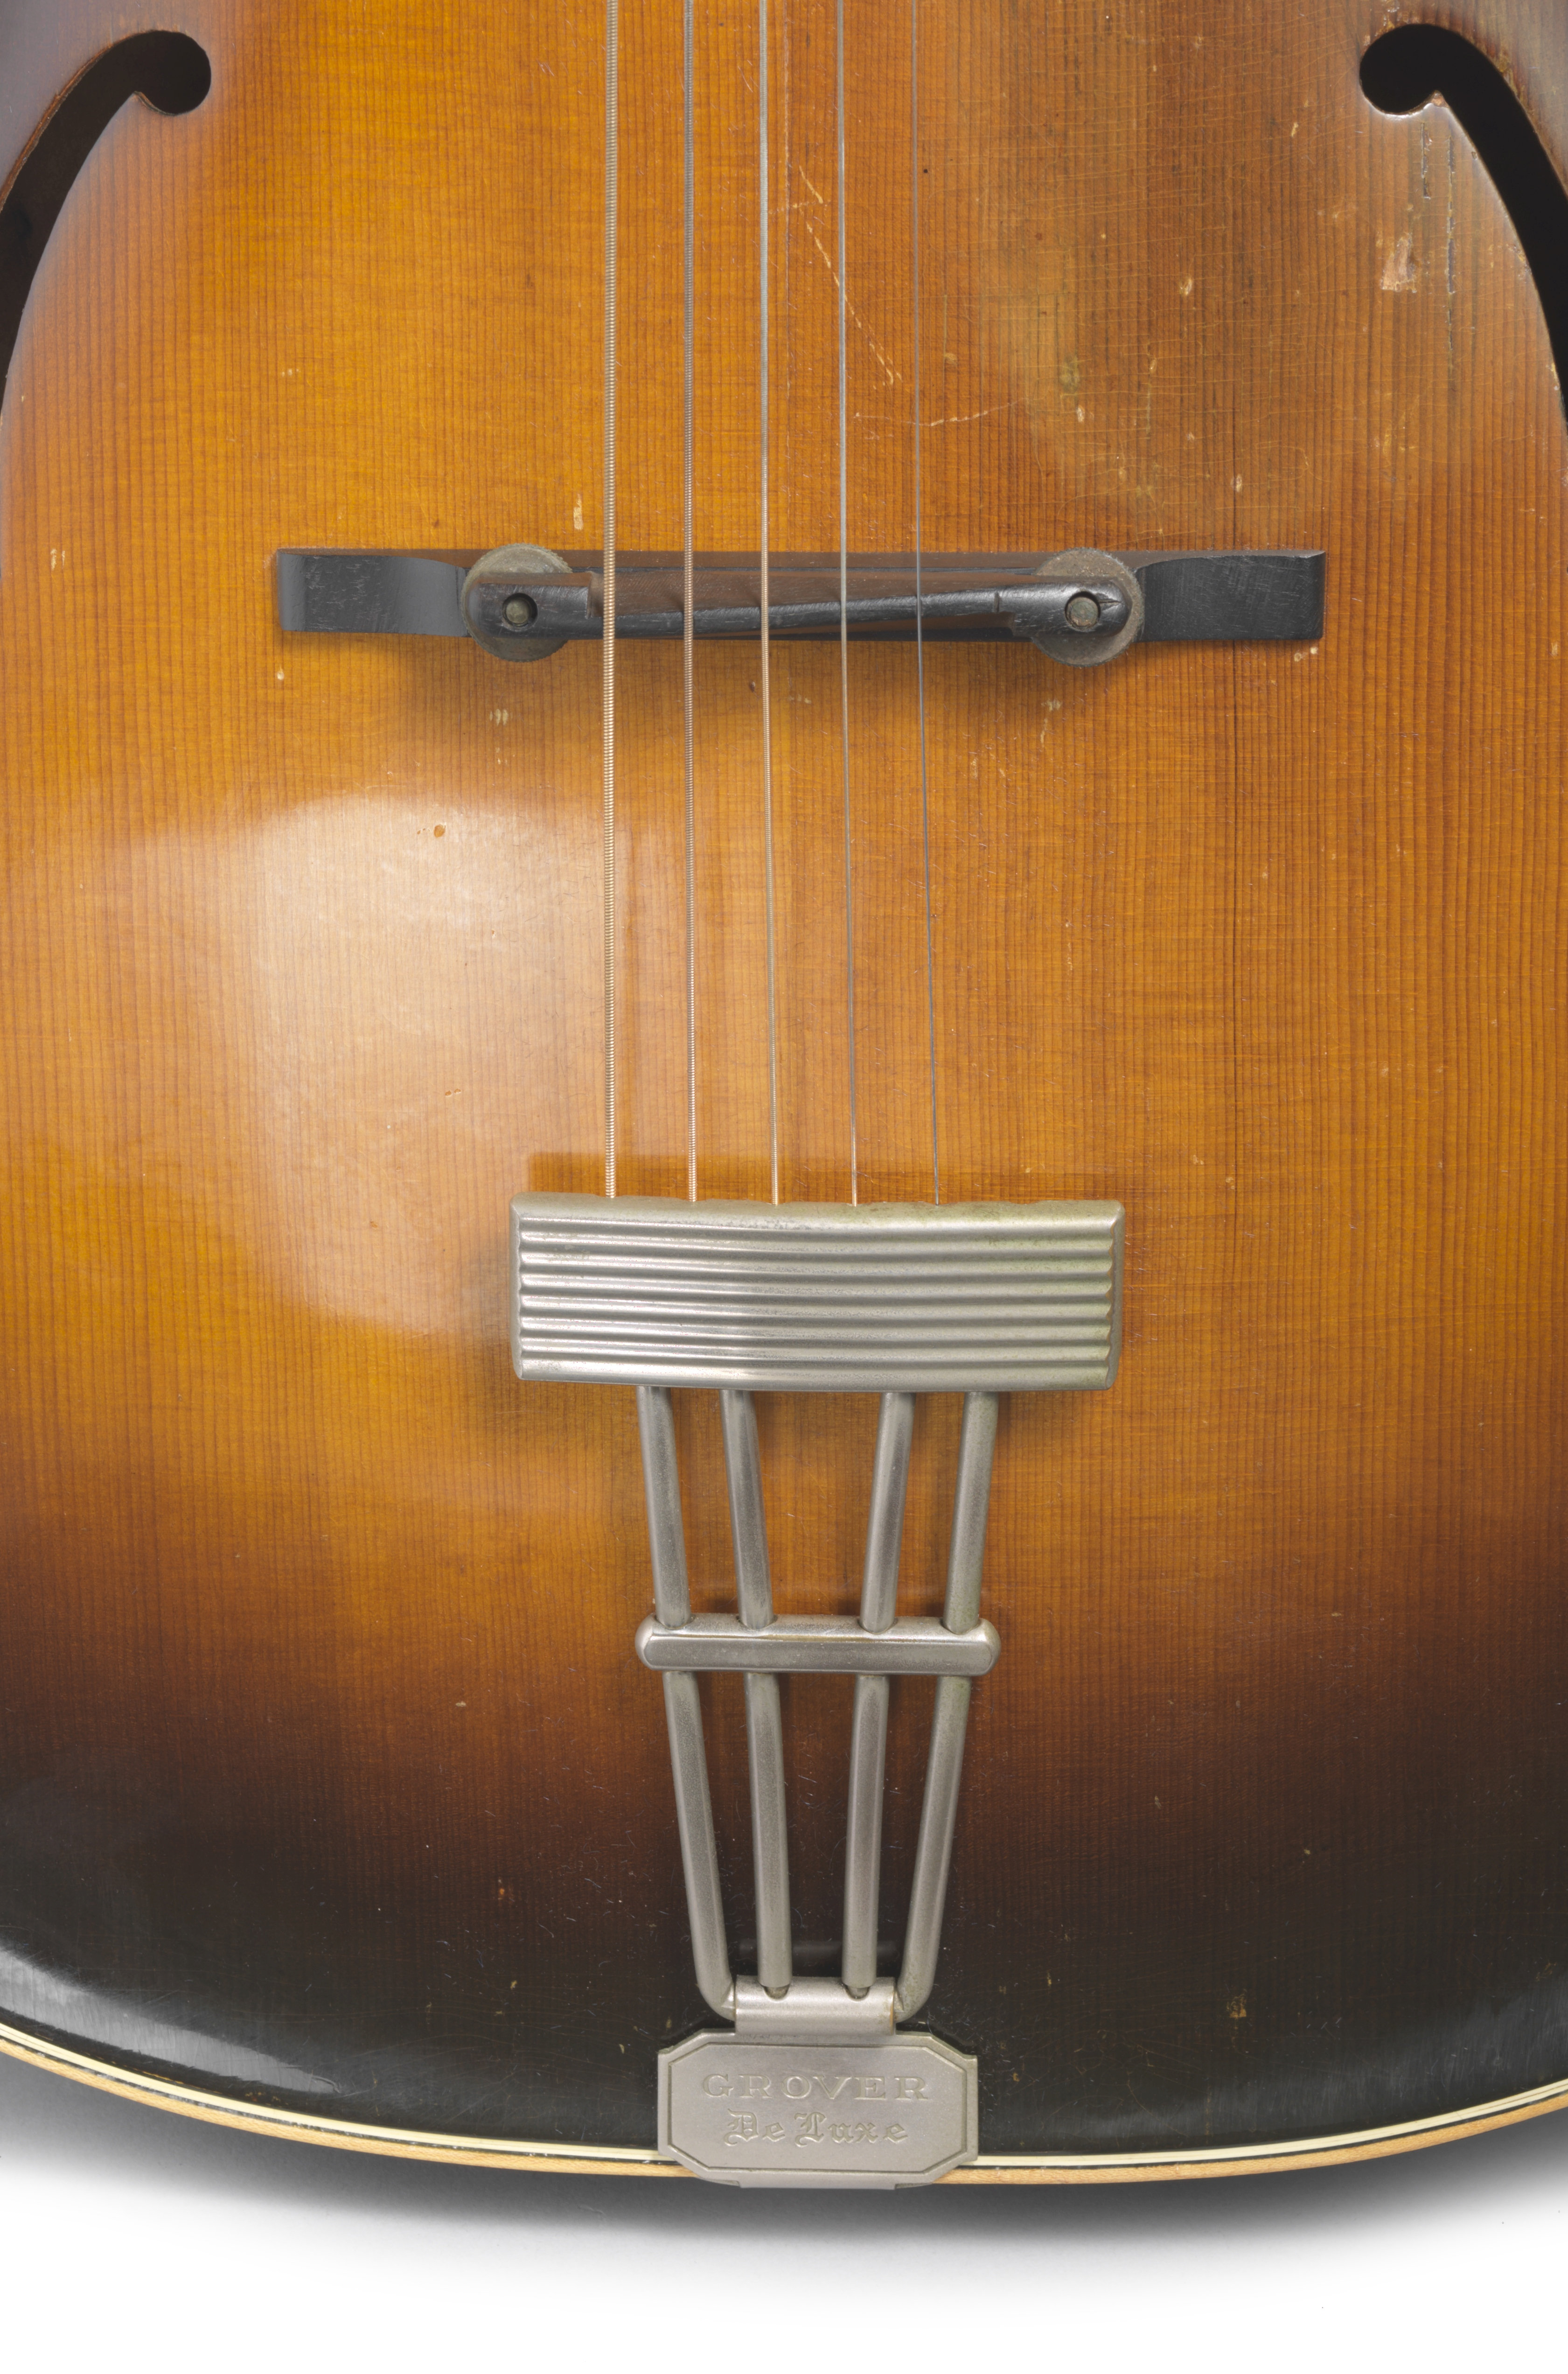 Lot 341 - A D'ANGELICO STYLE A ARCHTOP ACOUSTIC GUITAR OWNED AND PLAYED BY JERRY GARCIA